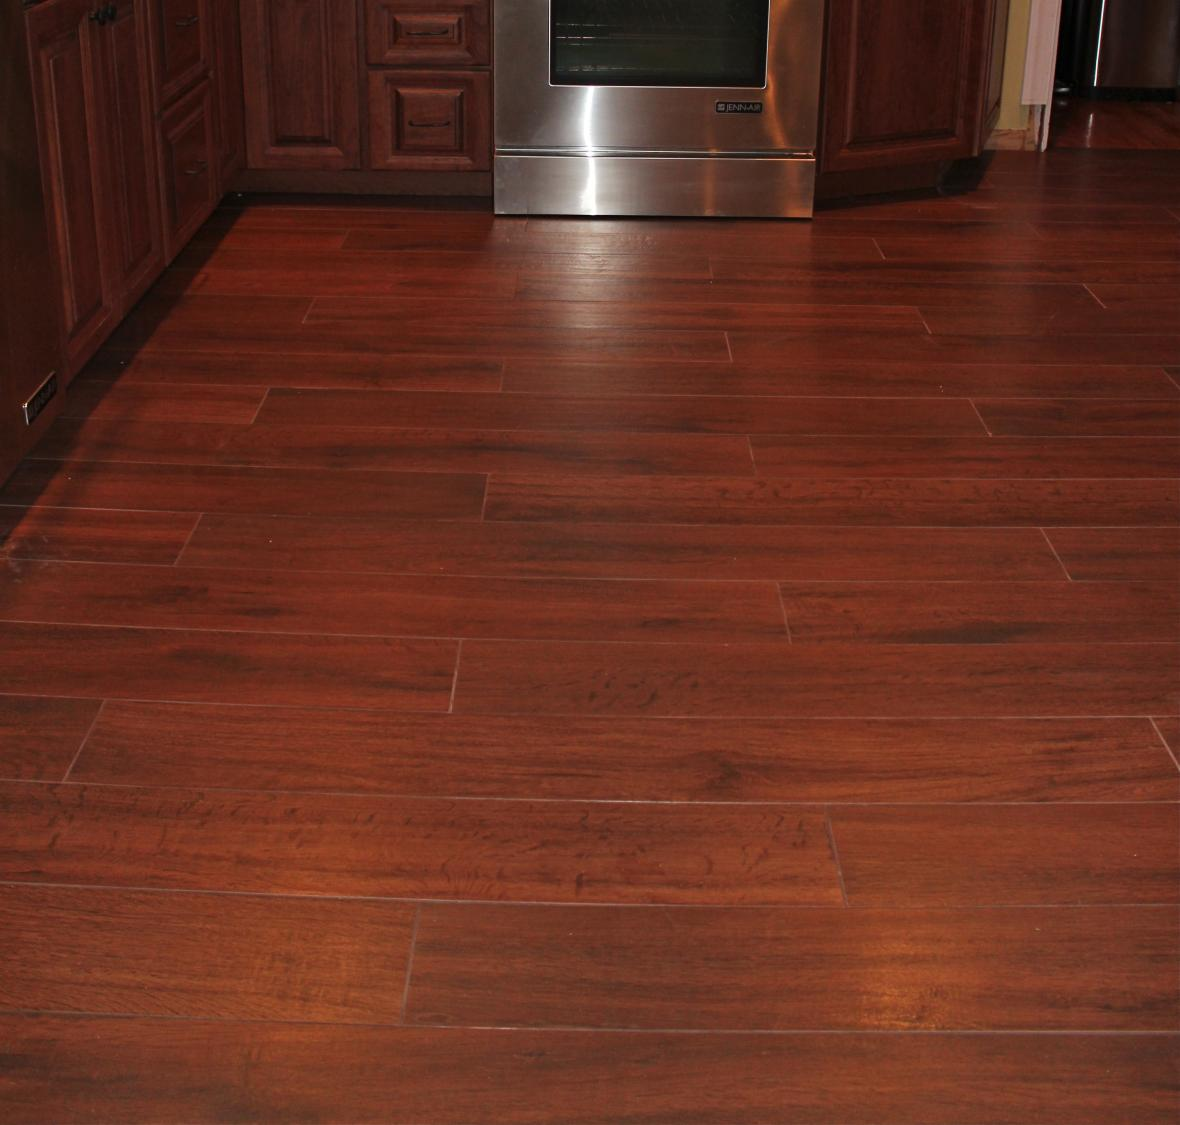 Porcelain wood plank tile floor new jersey custom tile for Hardwood floor tile kitchen